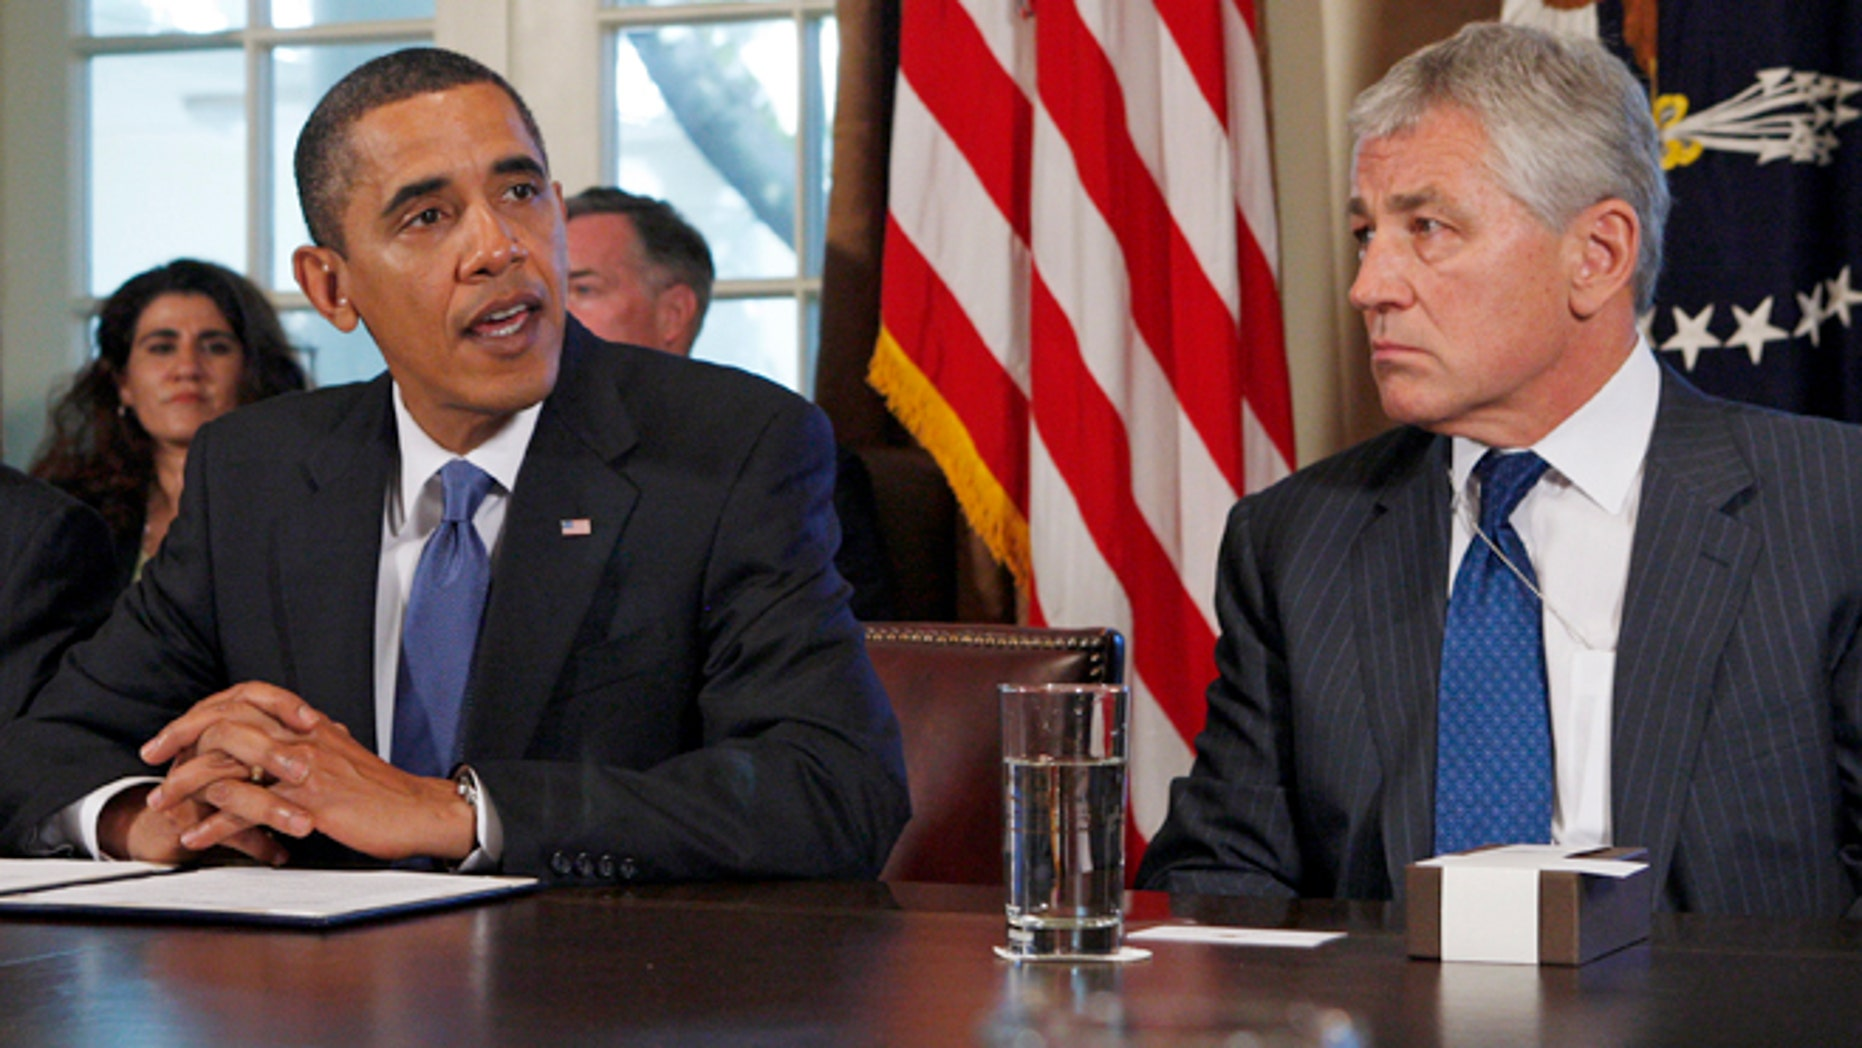 President Obama meets with Chuck Hagel, then co-chairman of the president's Intelligence Advisory Board, in this 2009 file photo.